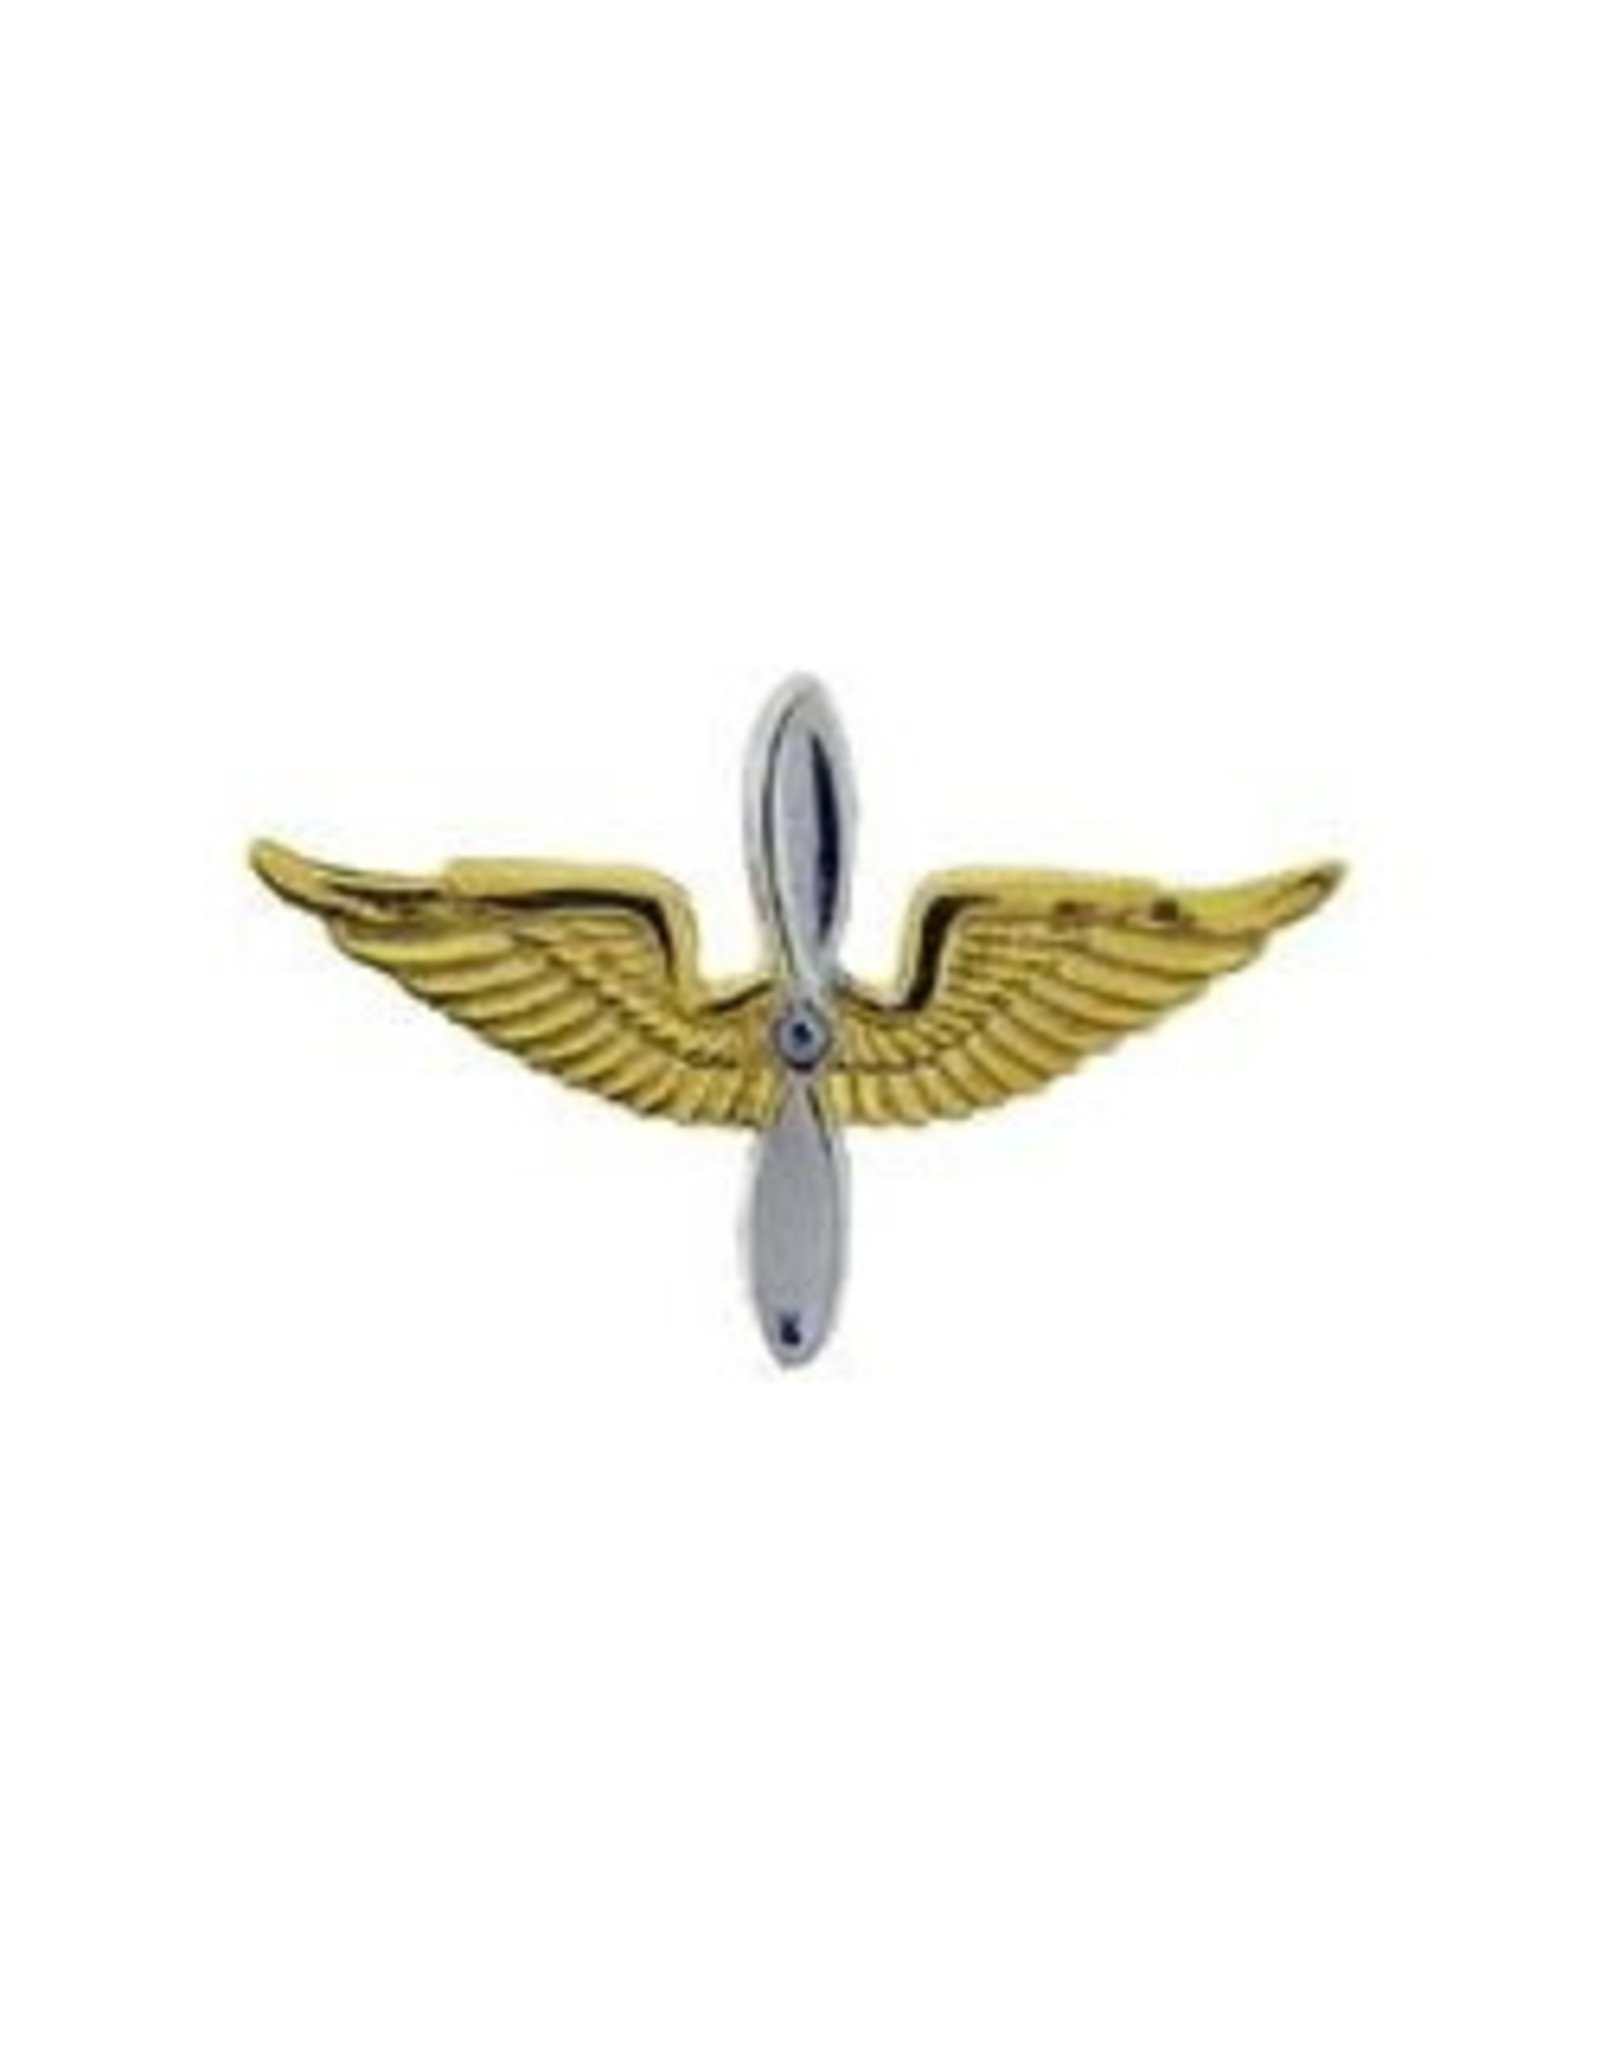 MidMil Army Aviation Officer Collar Emblem Pin 1-1/4""